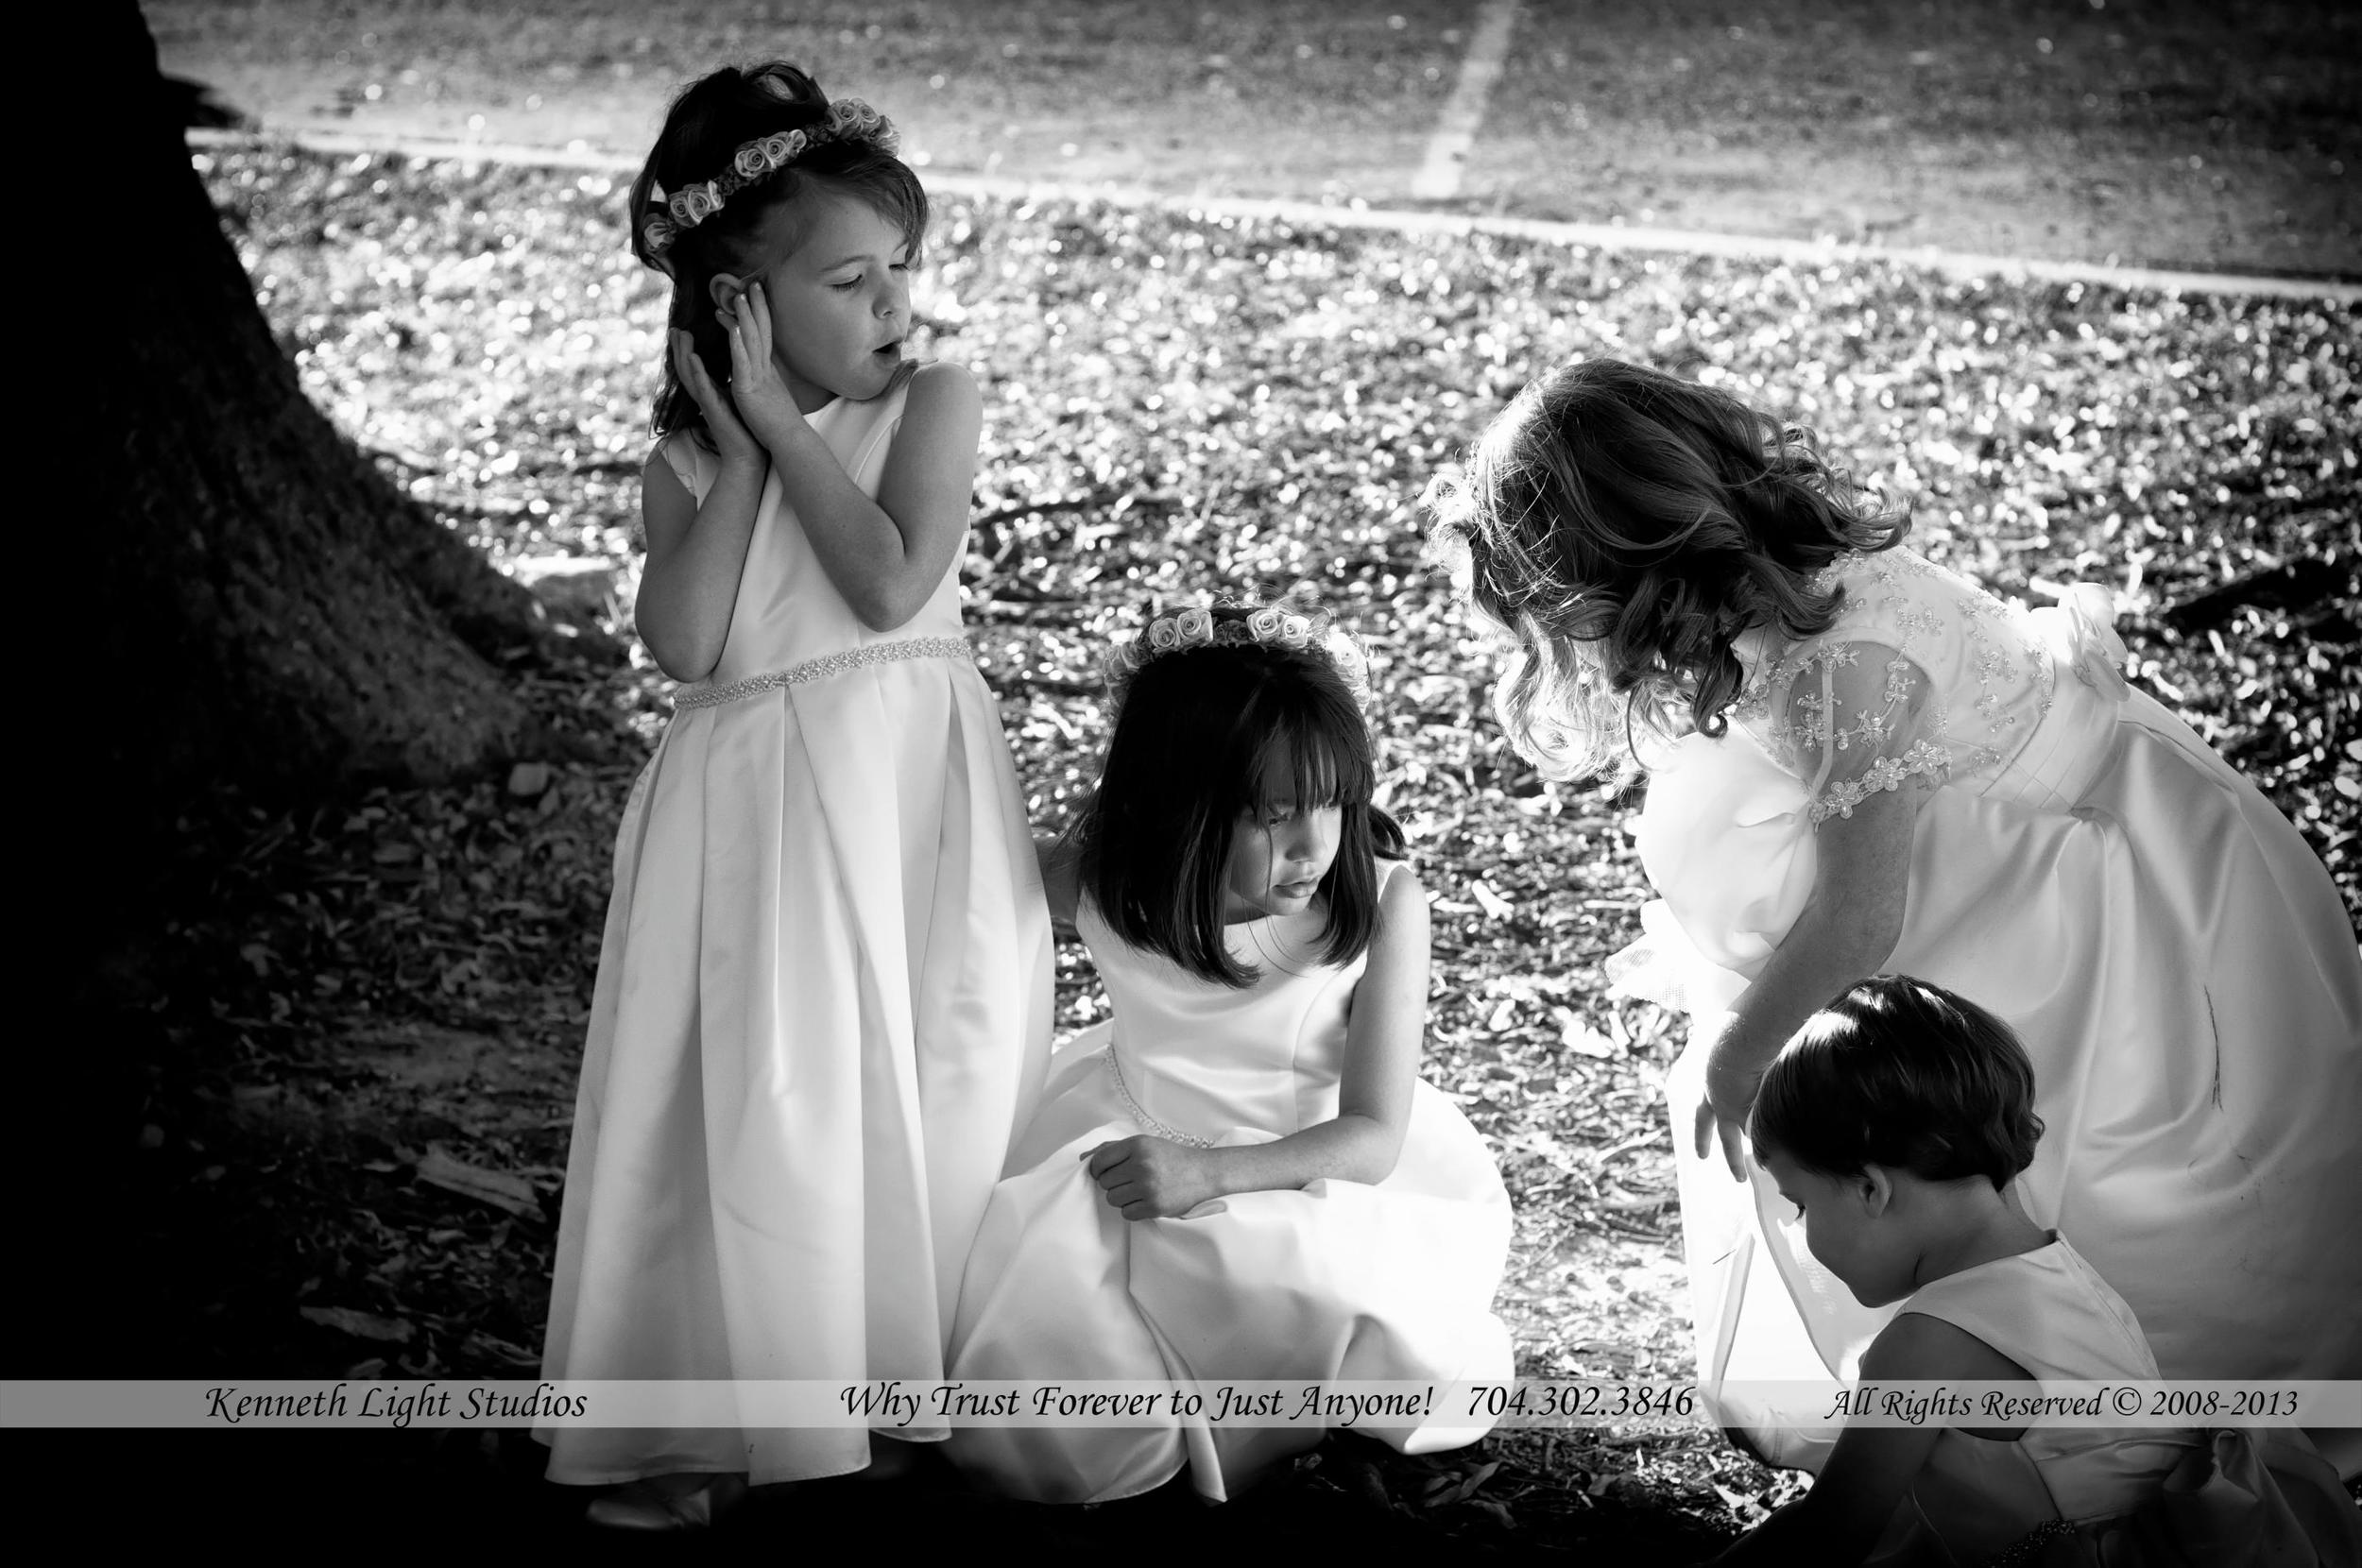 Wedding Photographs Explained, Kids at play by Kenneth Light Studios